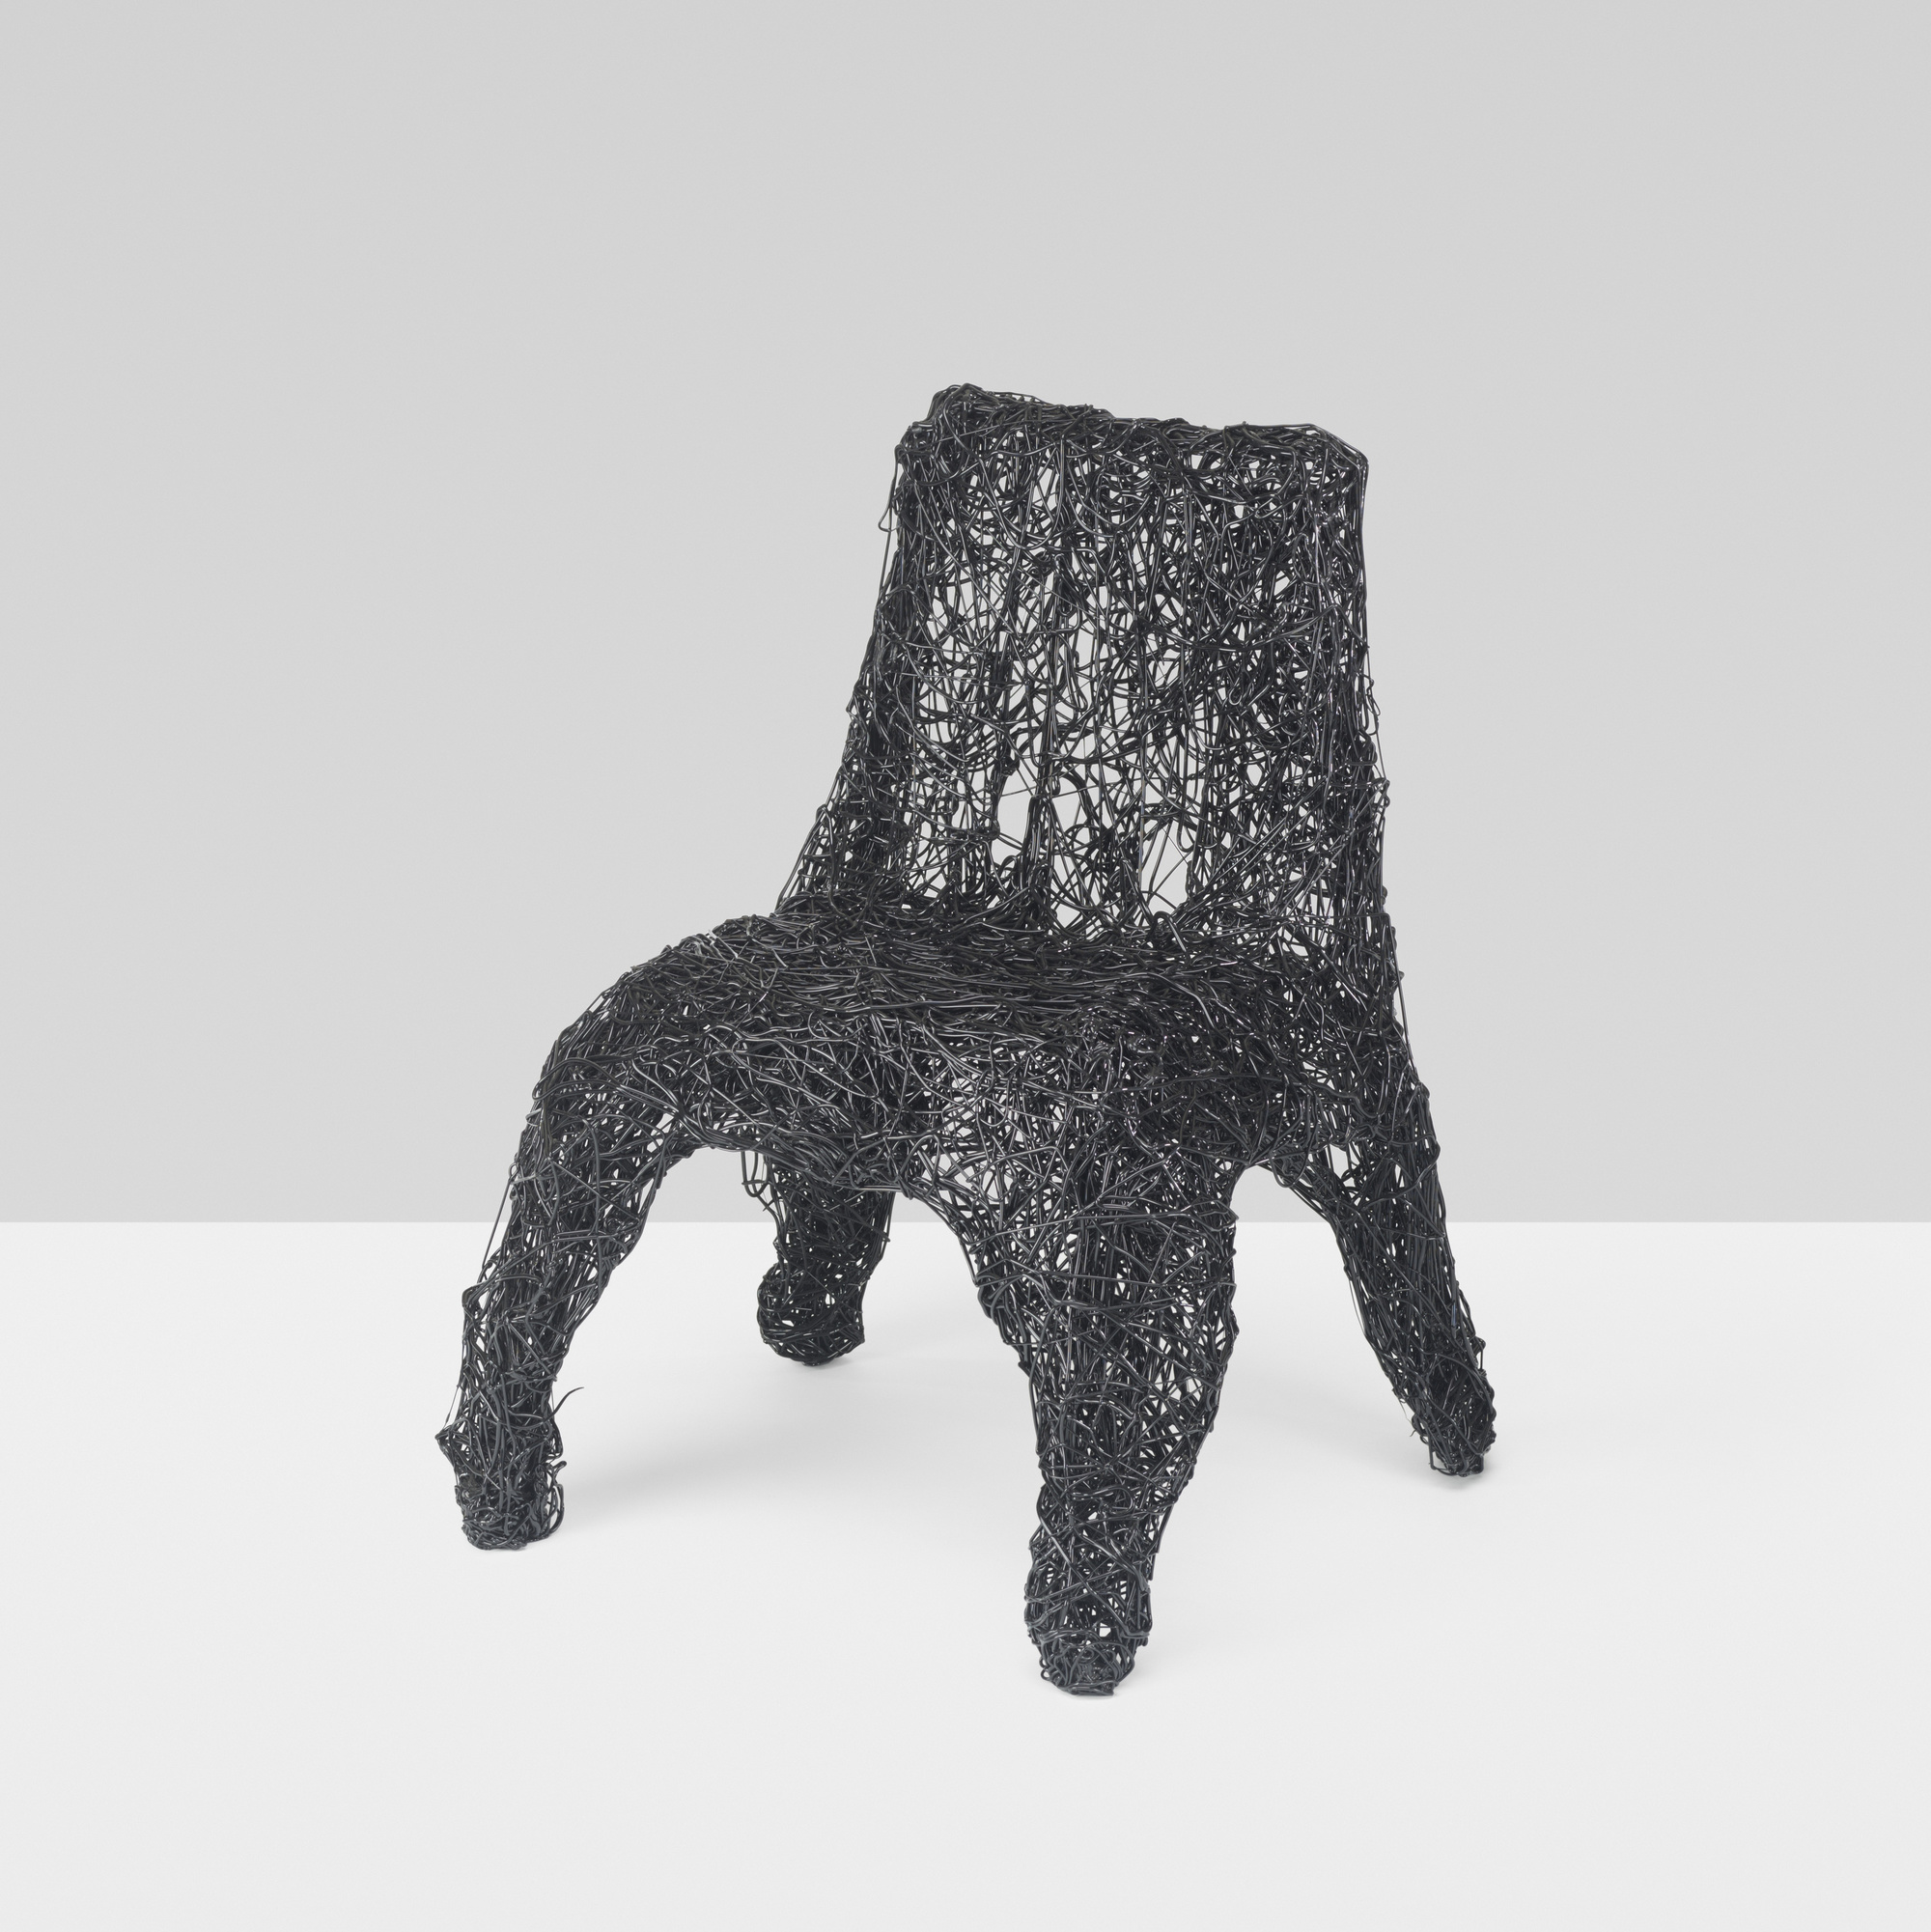 318: Tom Dixon / Extruded chair (1 of 3)